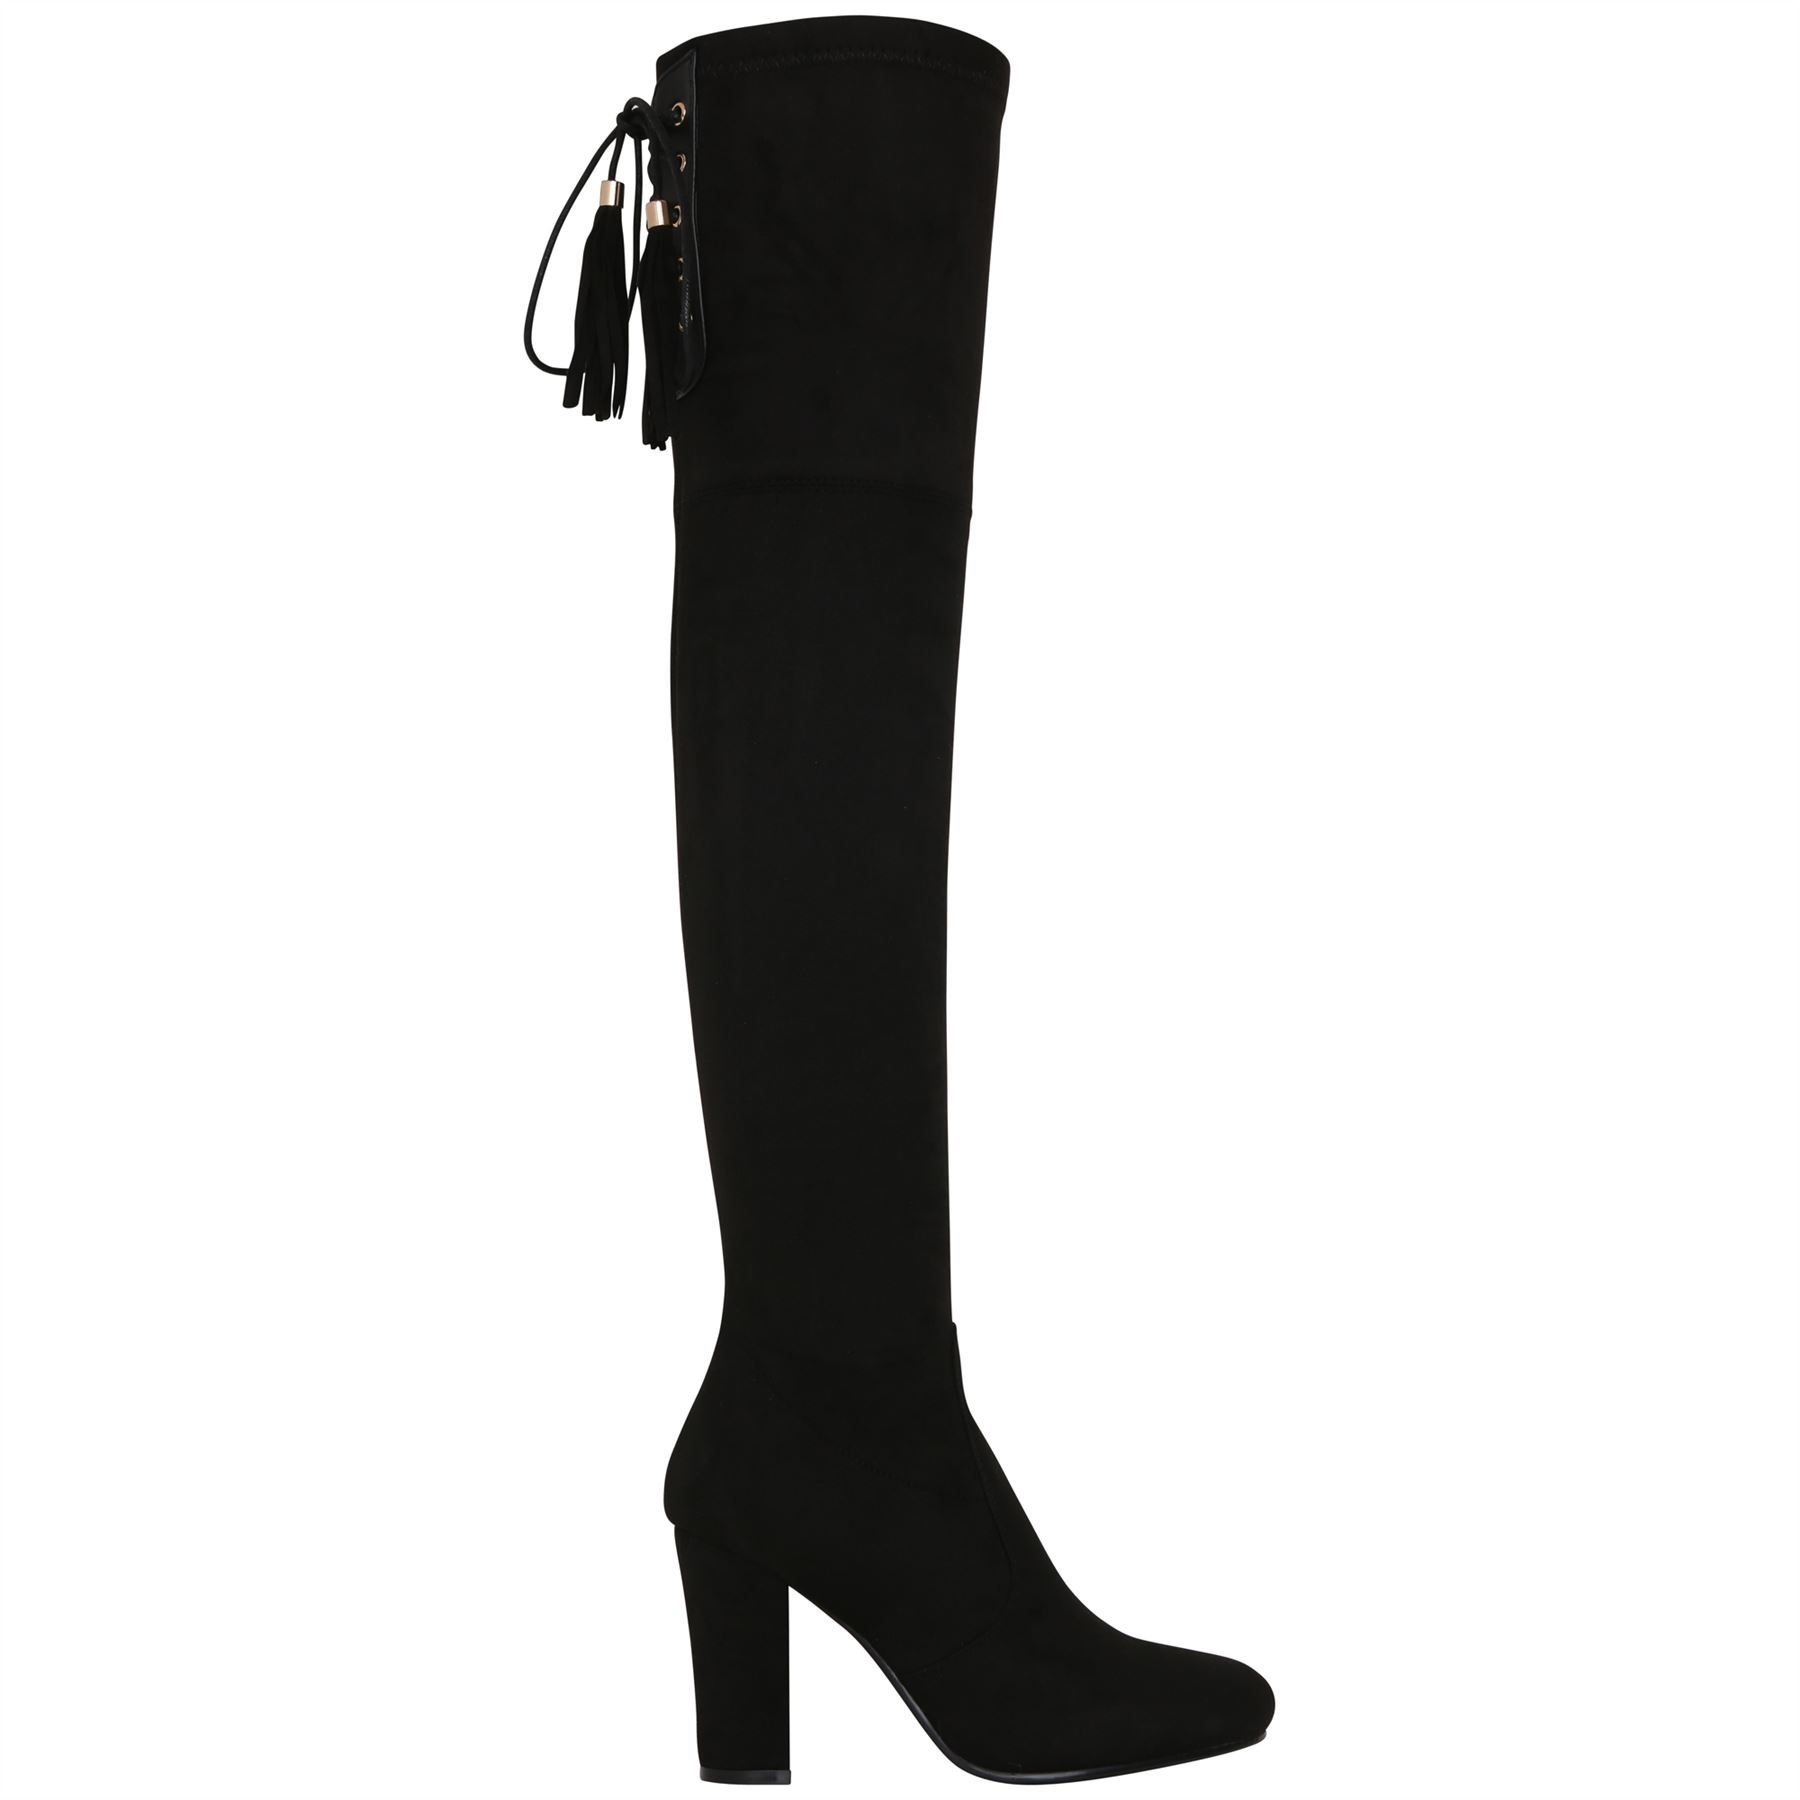 Womens-Over-Knee-High-Boots-Ladies-Low-Block-Heel-Riding-Stretch-Winter-Shoes miniatura 8